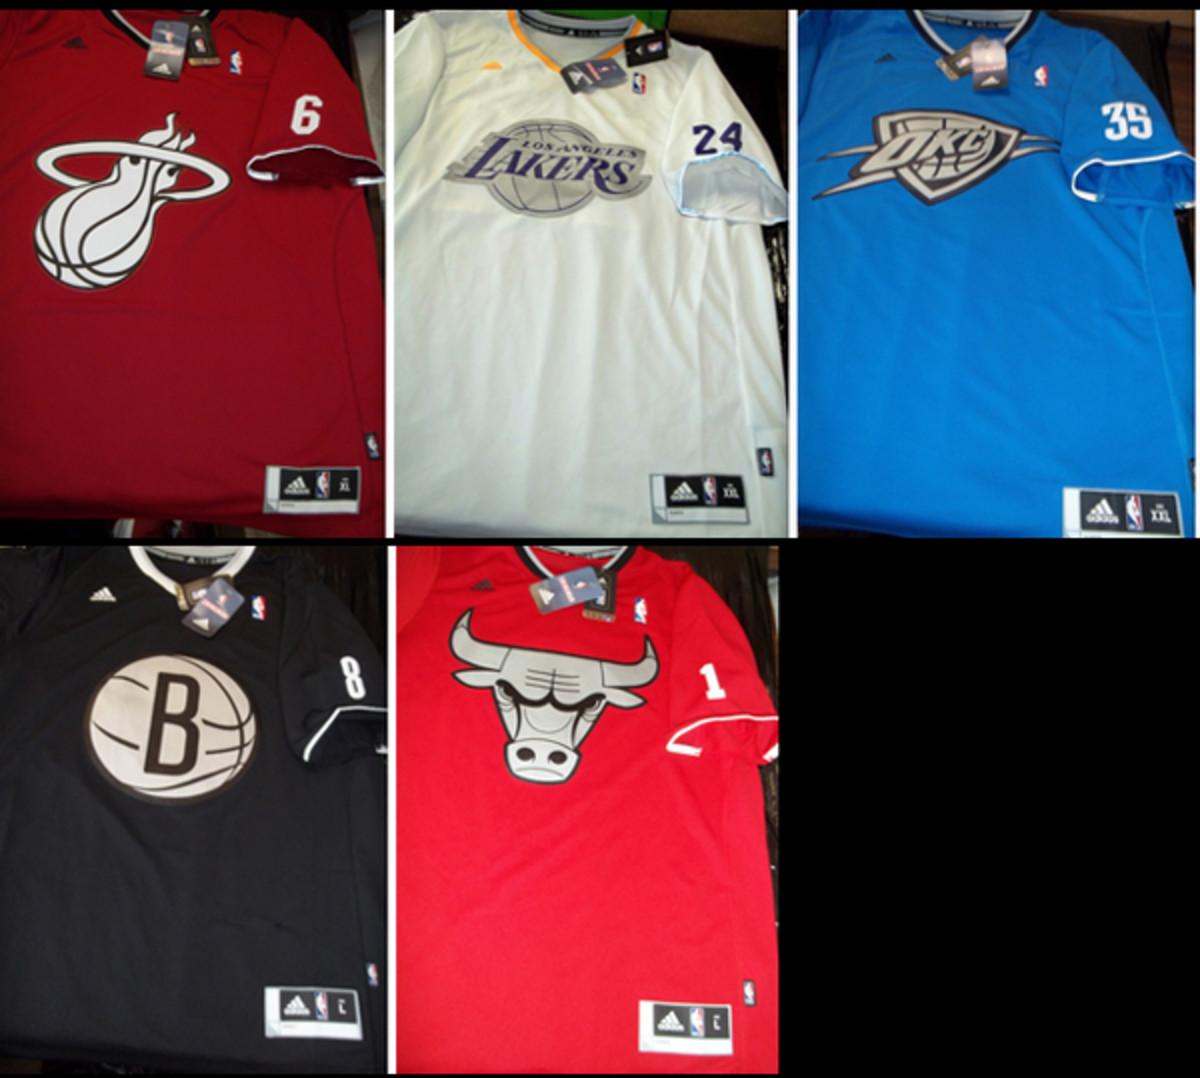 NBA's Christmas Day sleeved jersey